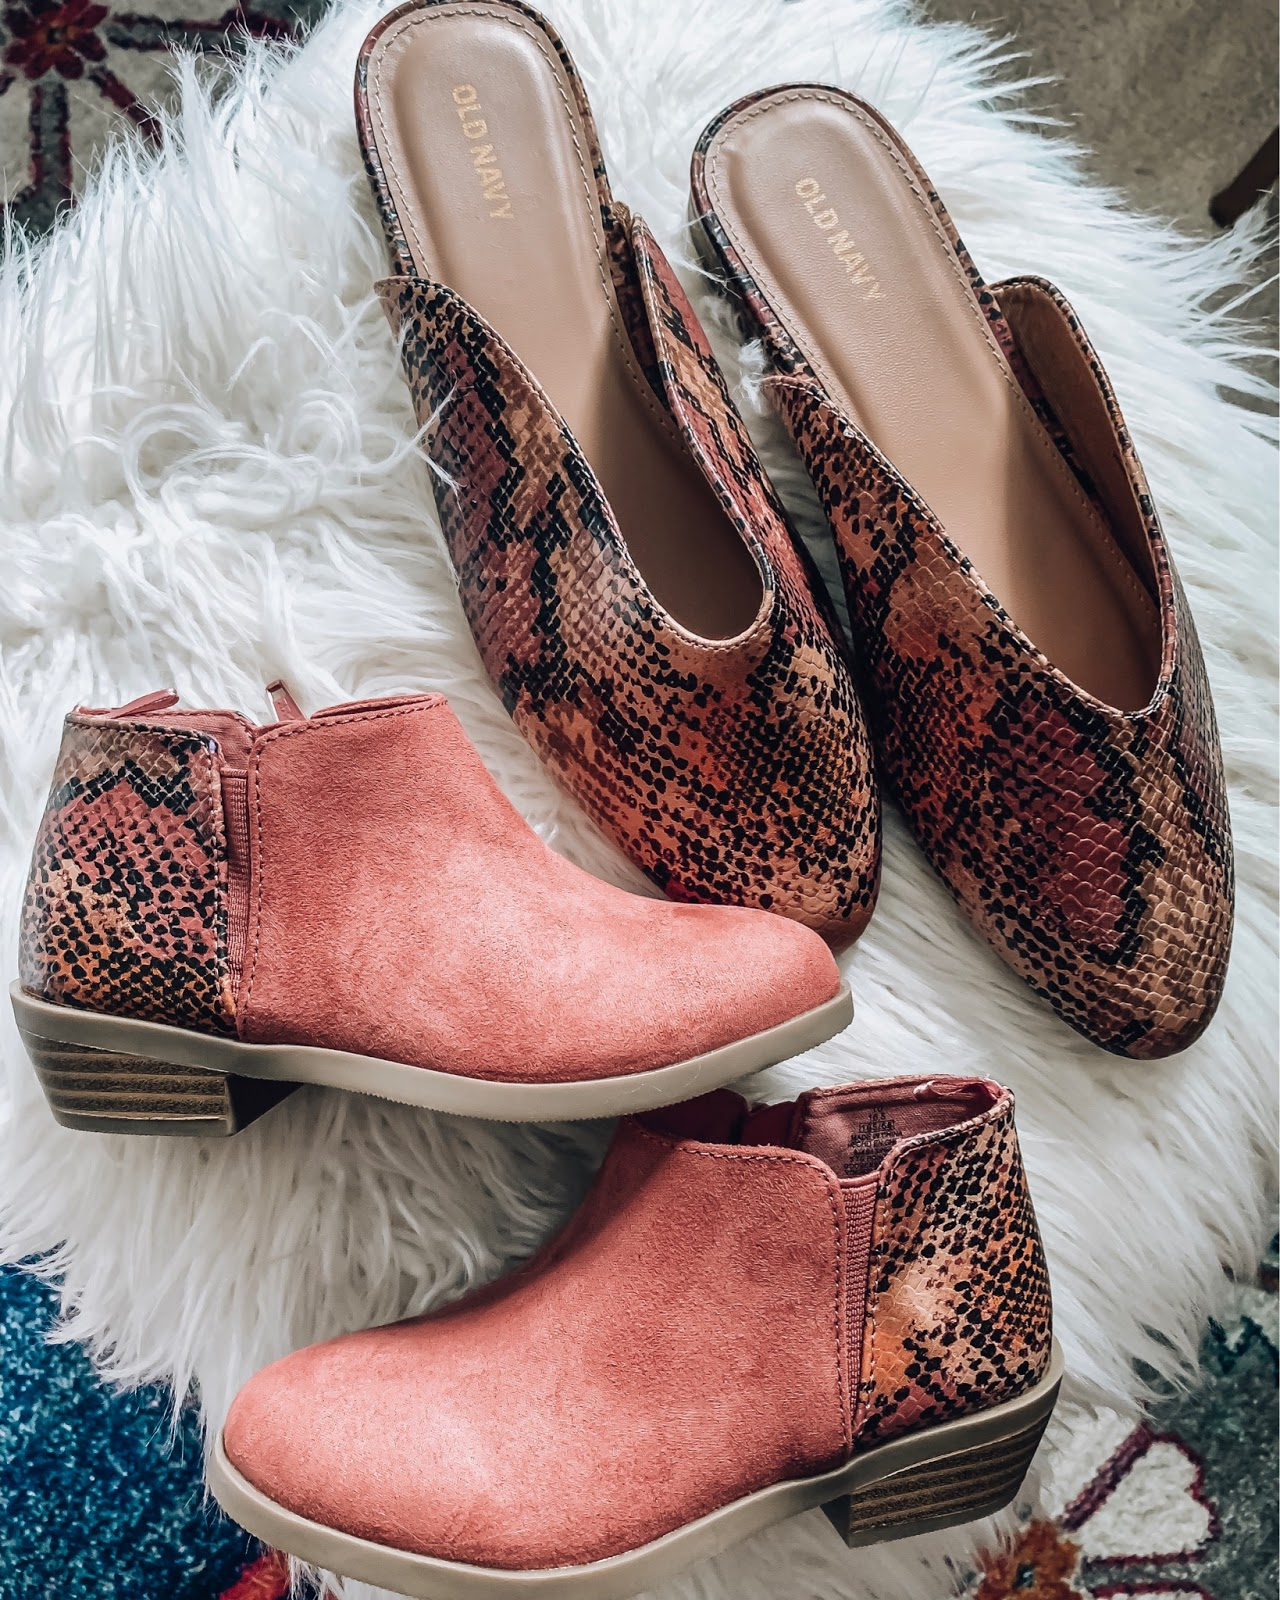 Old Navy Mommy and Me Snake Print Shoes - Somethig Delightful Blog #affordablefashion